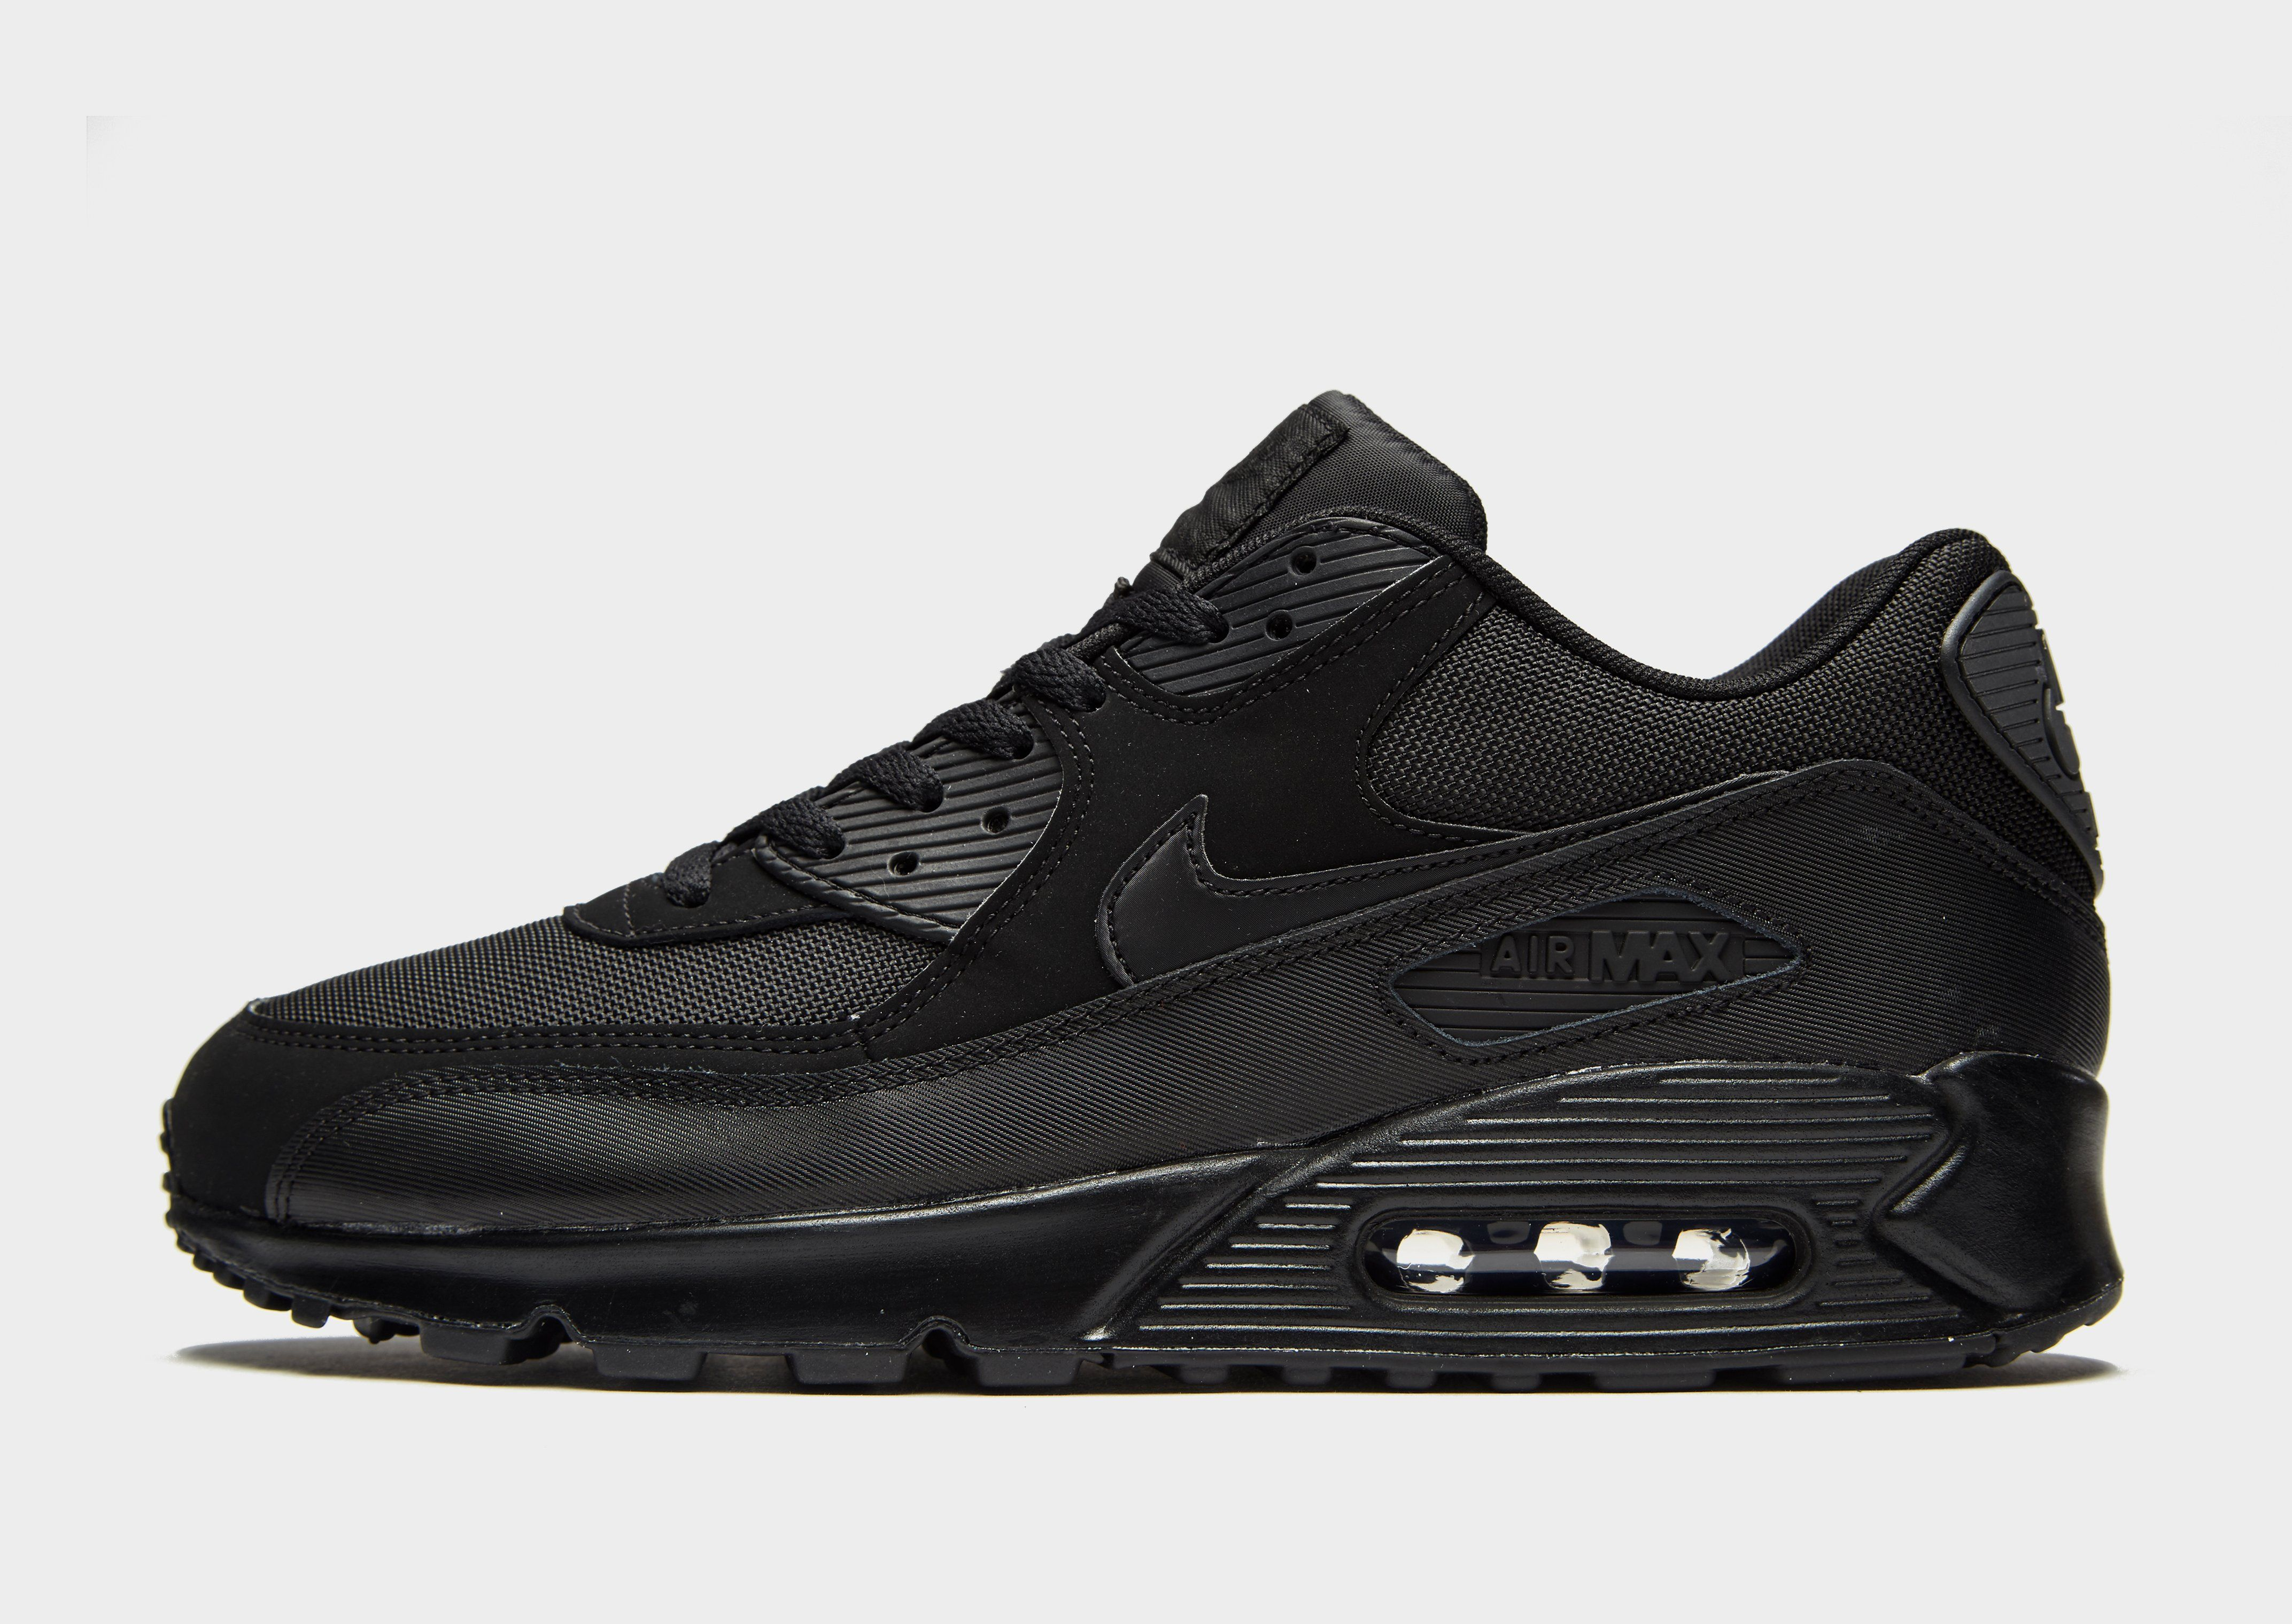 ee3566ed051838 Mens Footwear - Nike Air Max 90